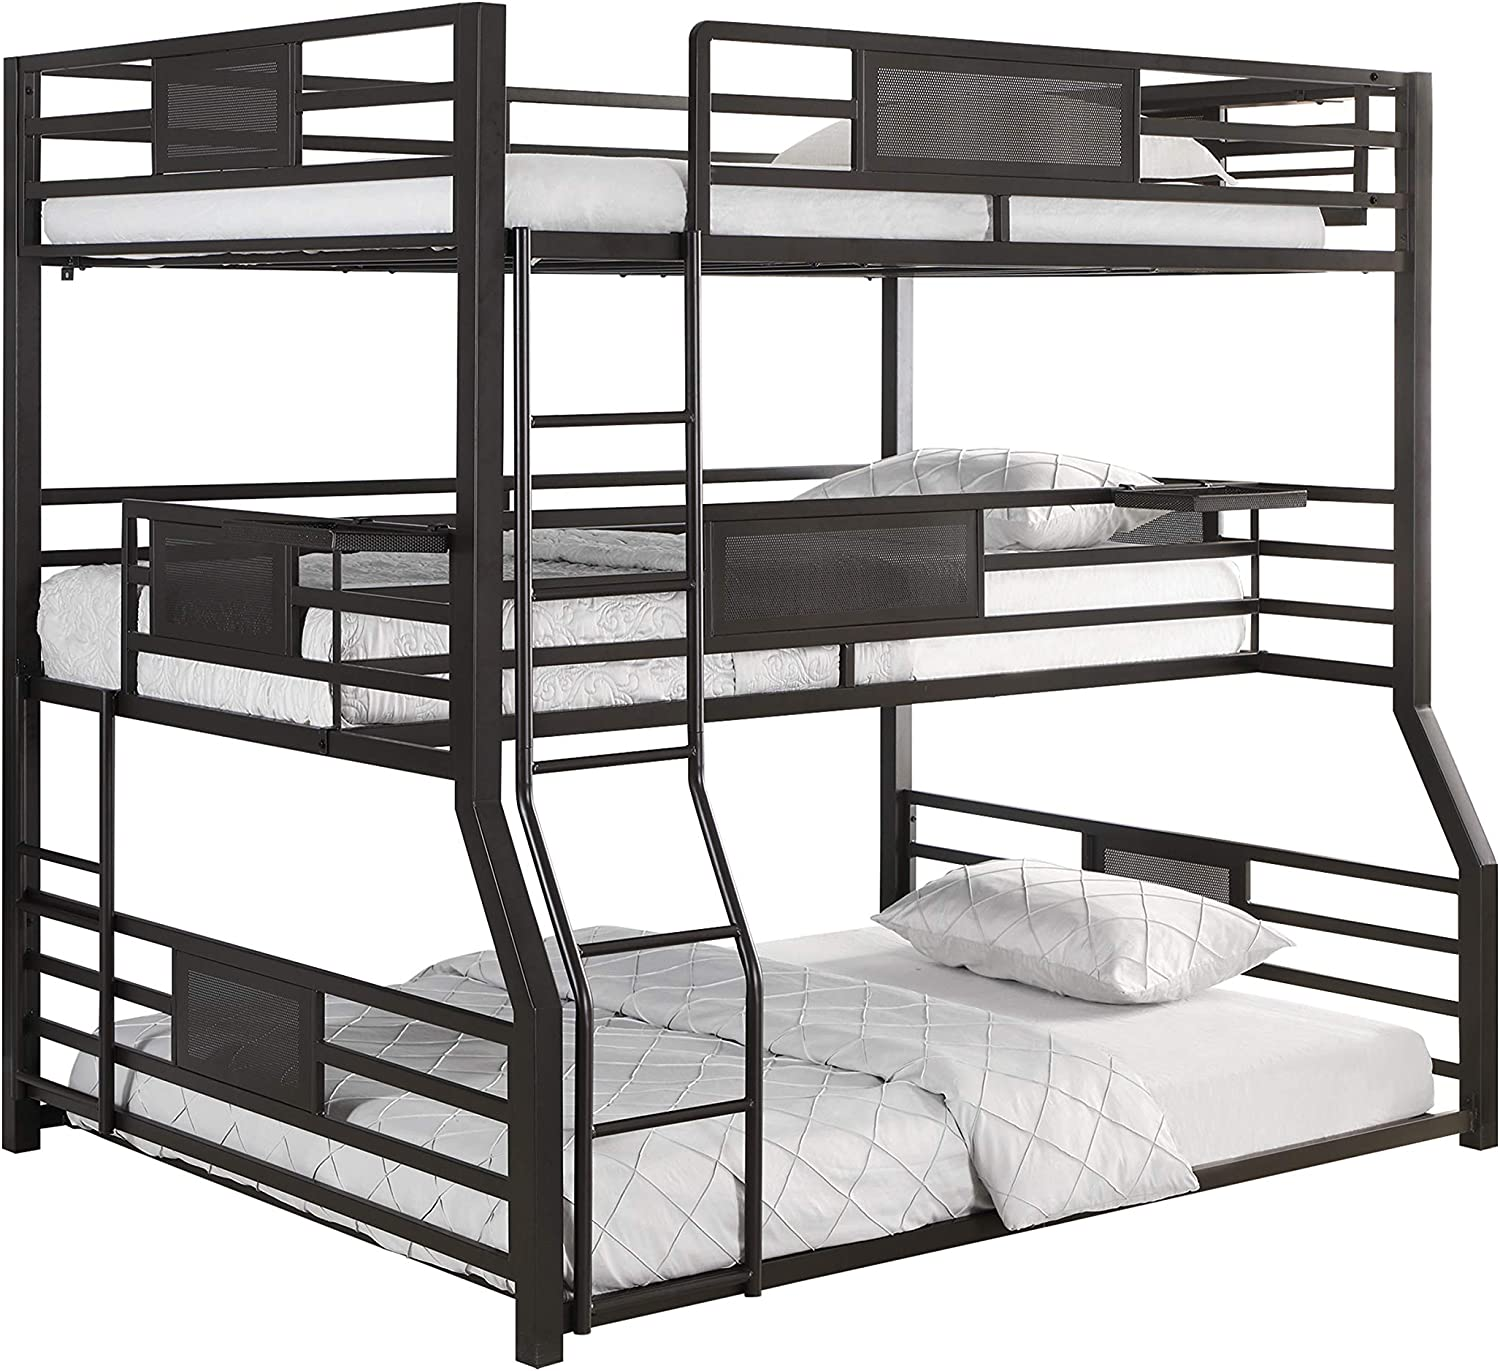 Coaster Home Furnishings Rogen Full Over Twin XL Over Queen Triple Bed Dark Bronze Bunk